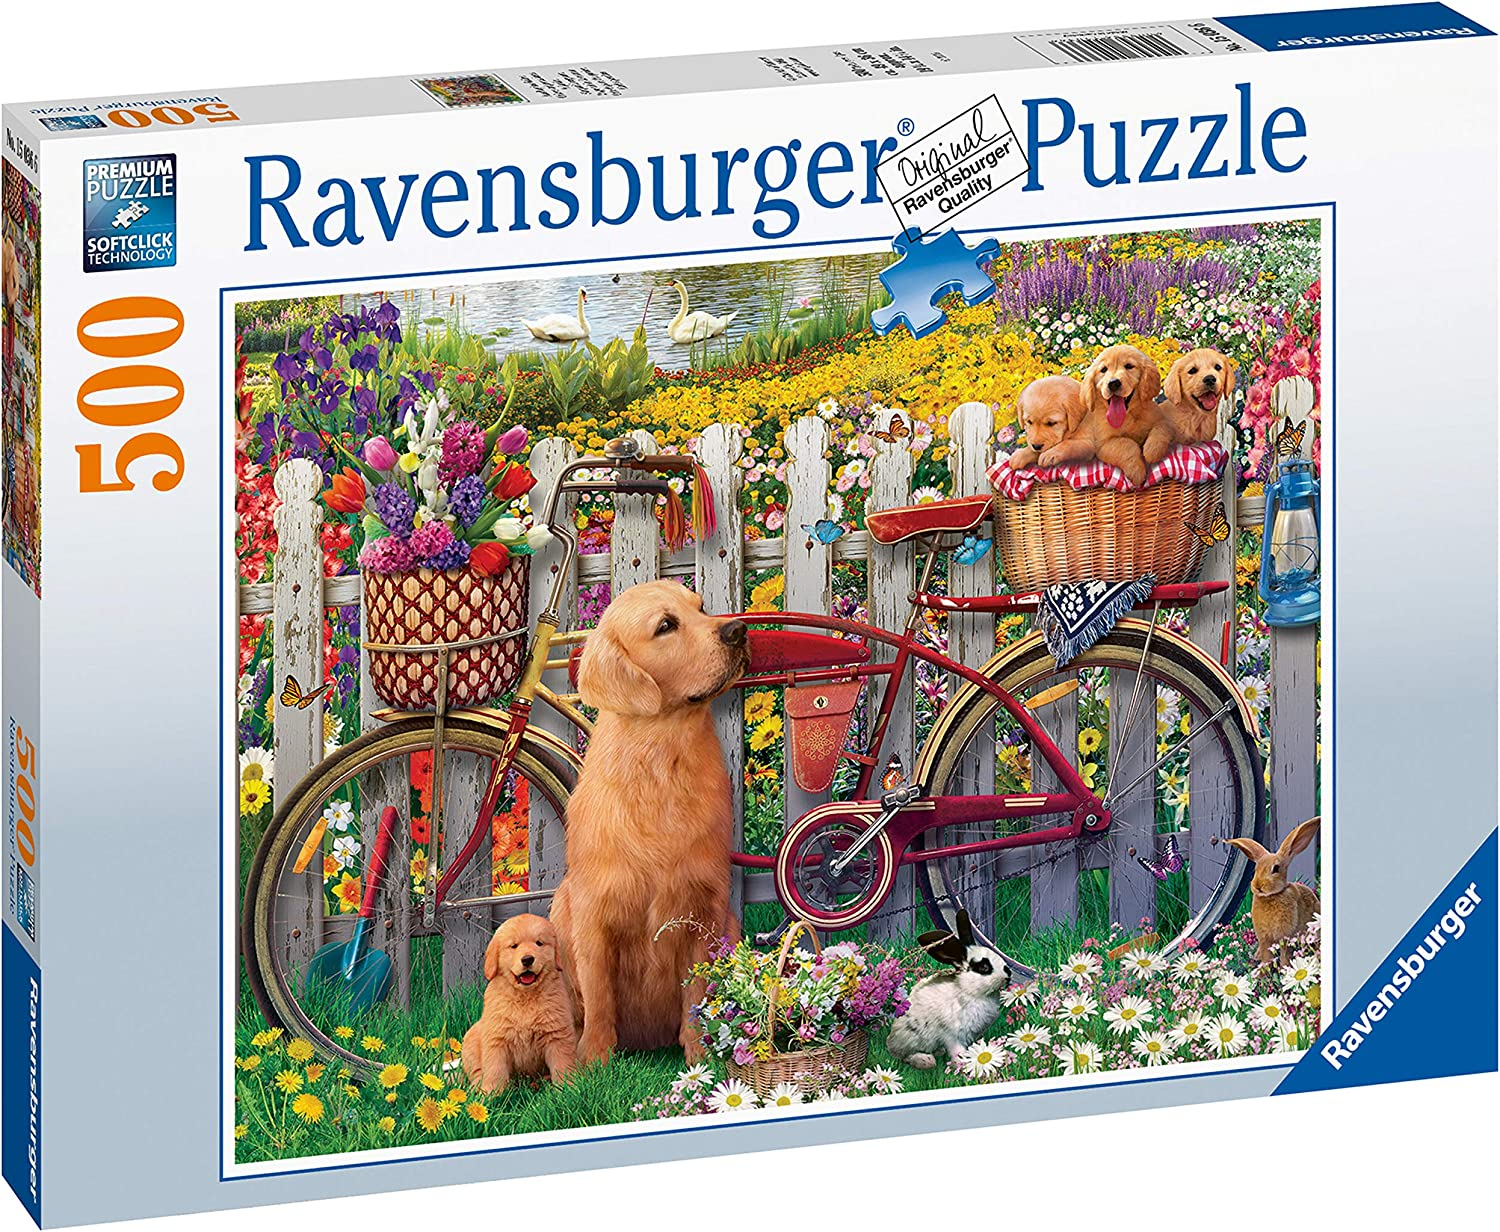 Ravensburger 15036 Cute Dogs in The Garden 500 Piece Puzzle for Adults - Every Piece is Unique, Softclick Technology Means Pieces Fit Together Perfectly